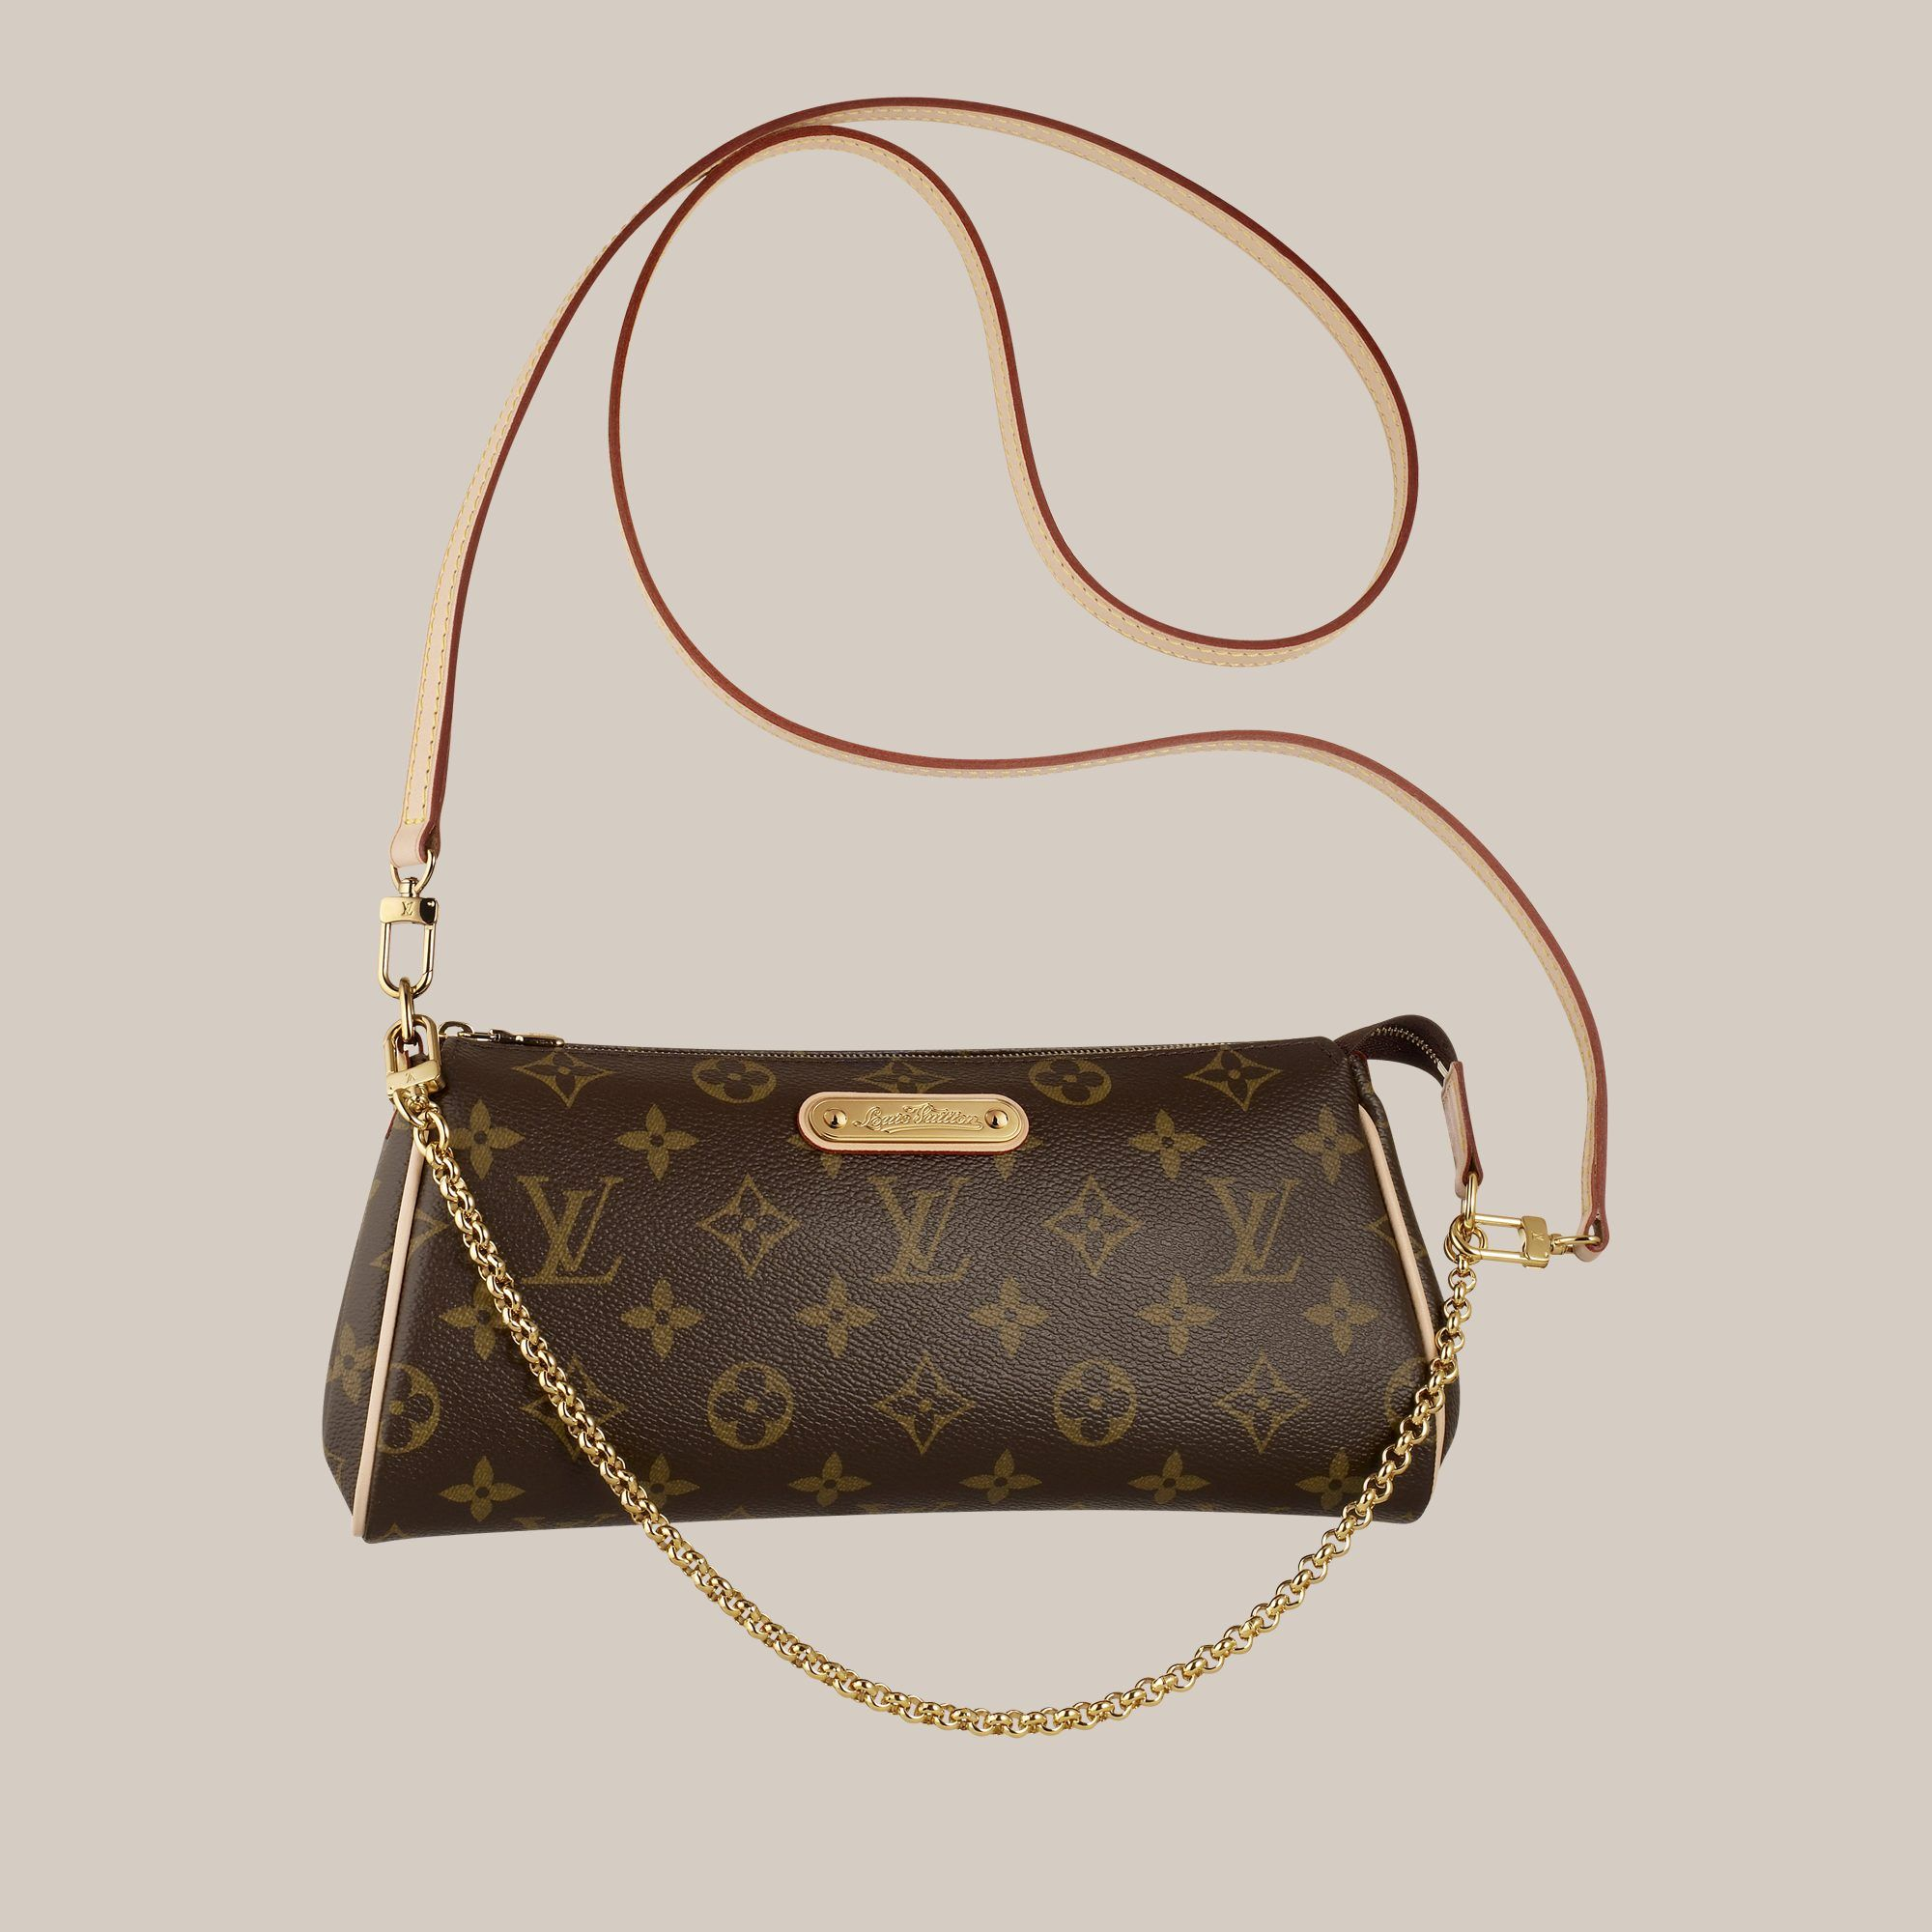 7156b73681b7 Louis Vuitton Pochette Eva - - Sacs-a-main   LOUIS VUITTON in 2019 ...